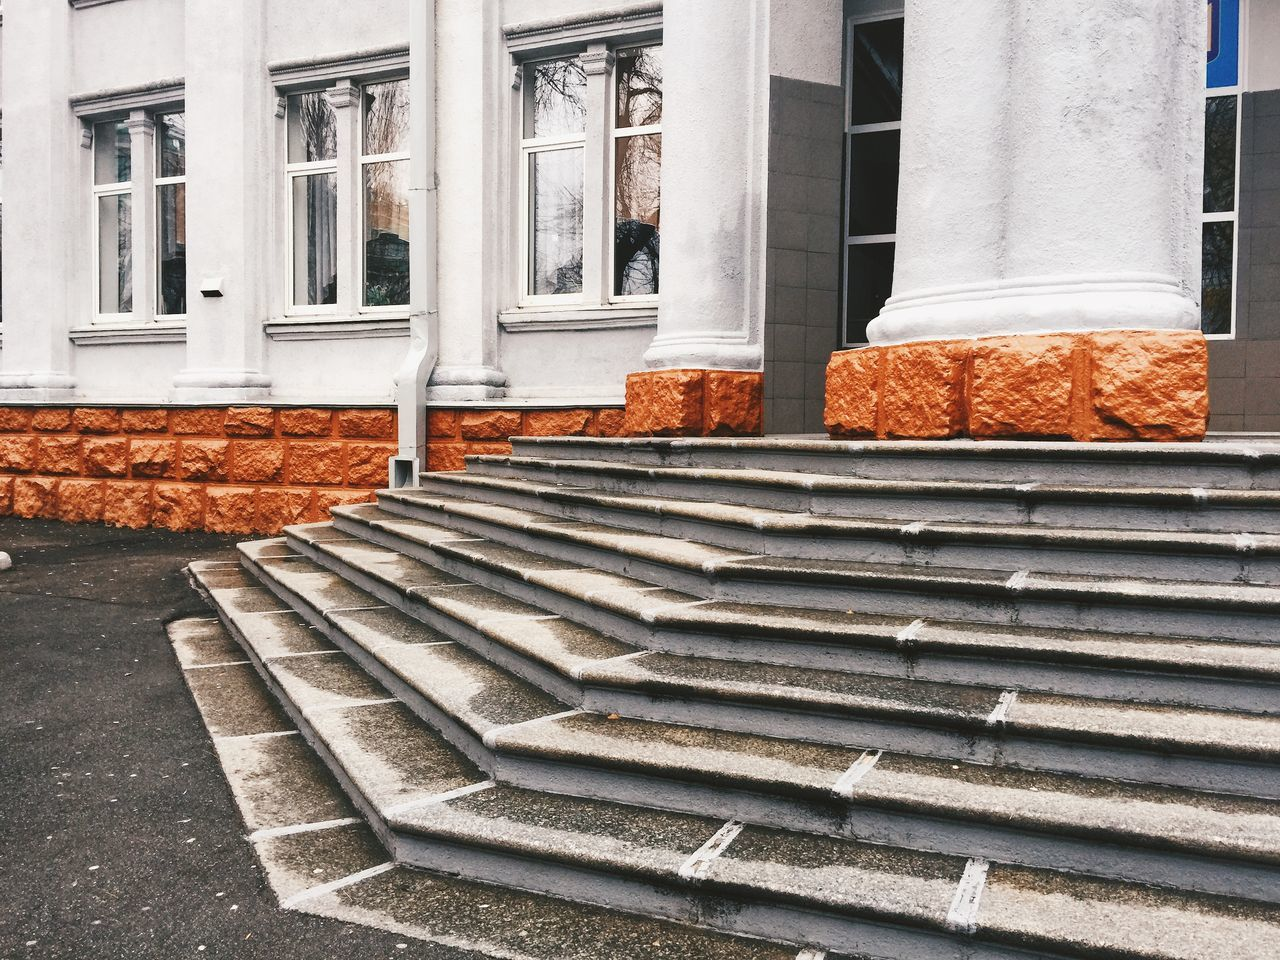 Steps of the USSR kind of building in Kiev, Ukraine Architectural Column Architecture Architecture Beautiful Brick Building Exterior Built Structure Column Day Empty Facades Frame Kiev No People Outdoors Stair Steps Street Tourism Travel Ukraine Ussr Wet Window Winter